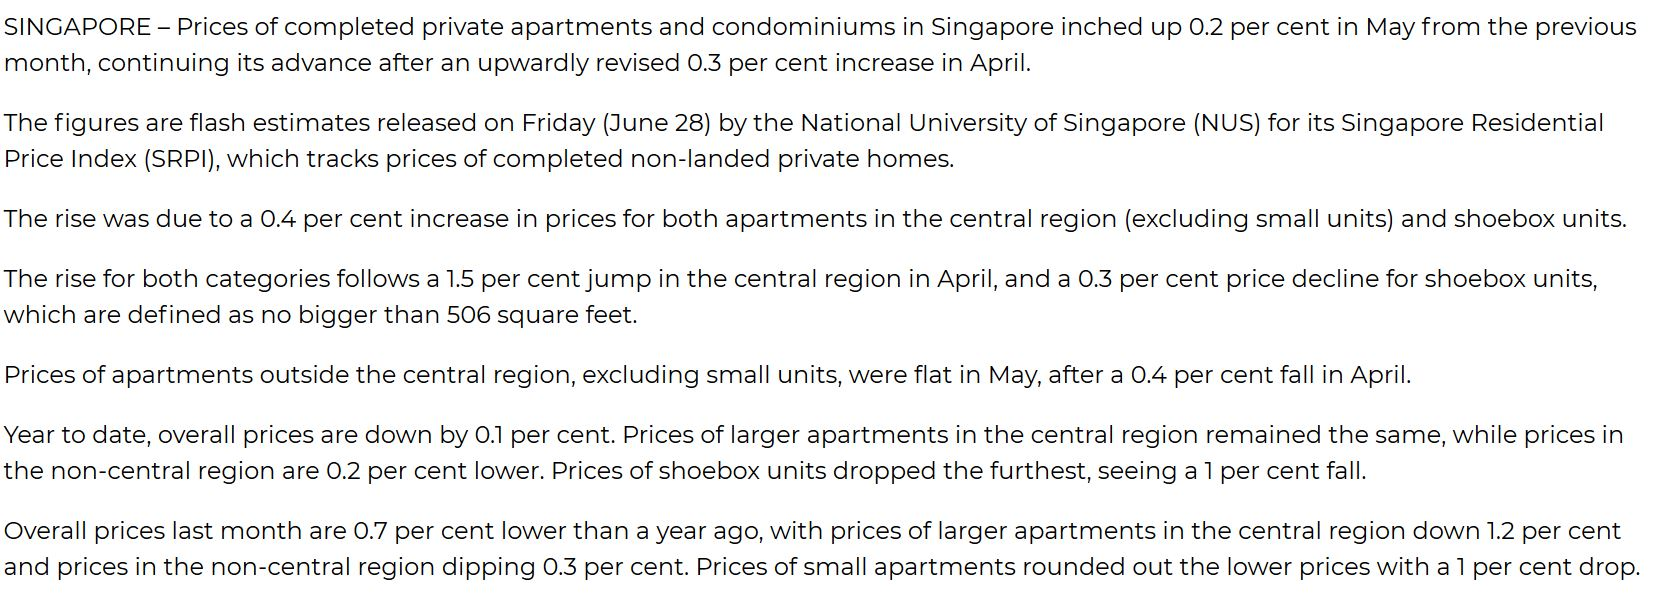 the-florence-residences-completed-condo-prices-up-article-singapore